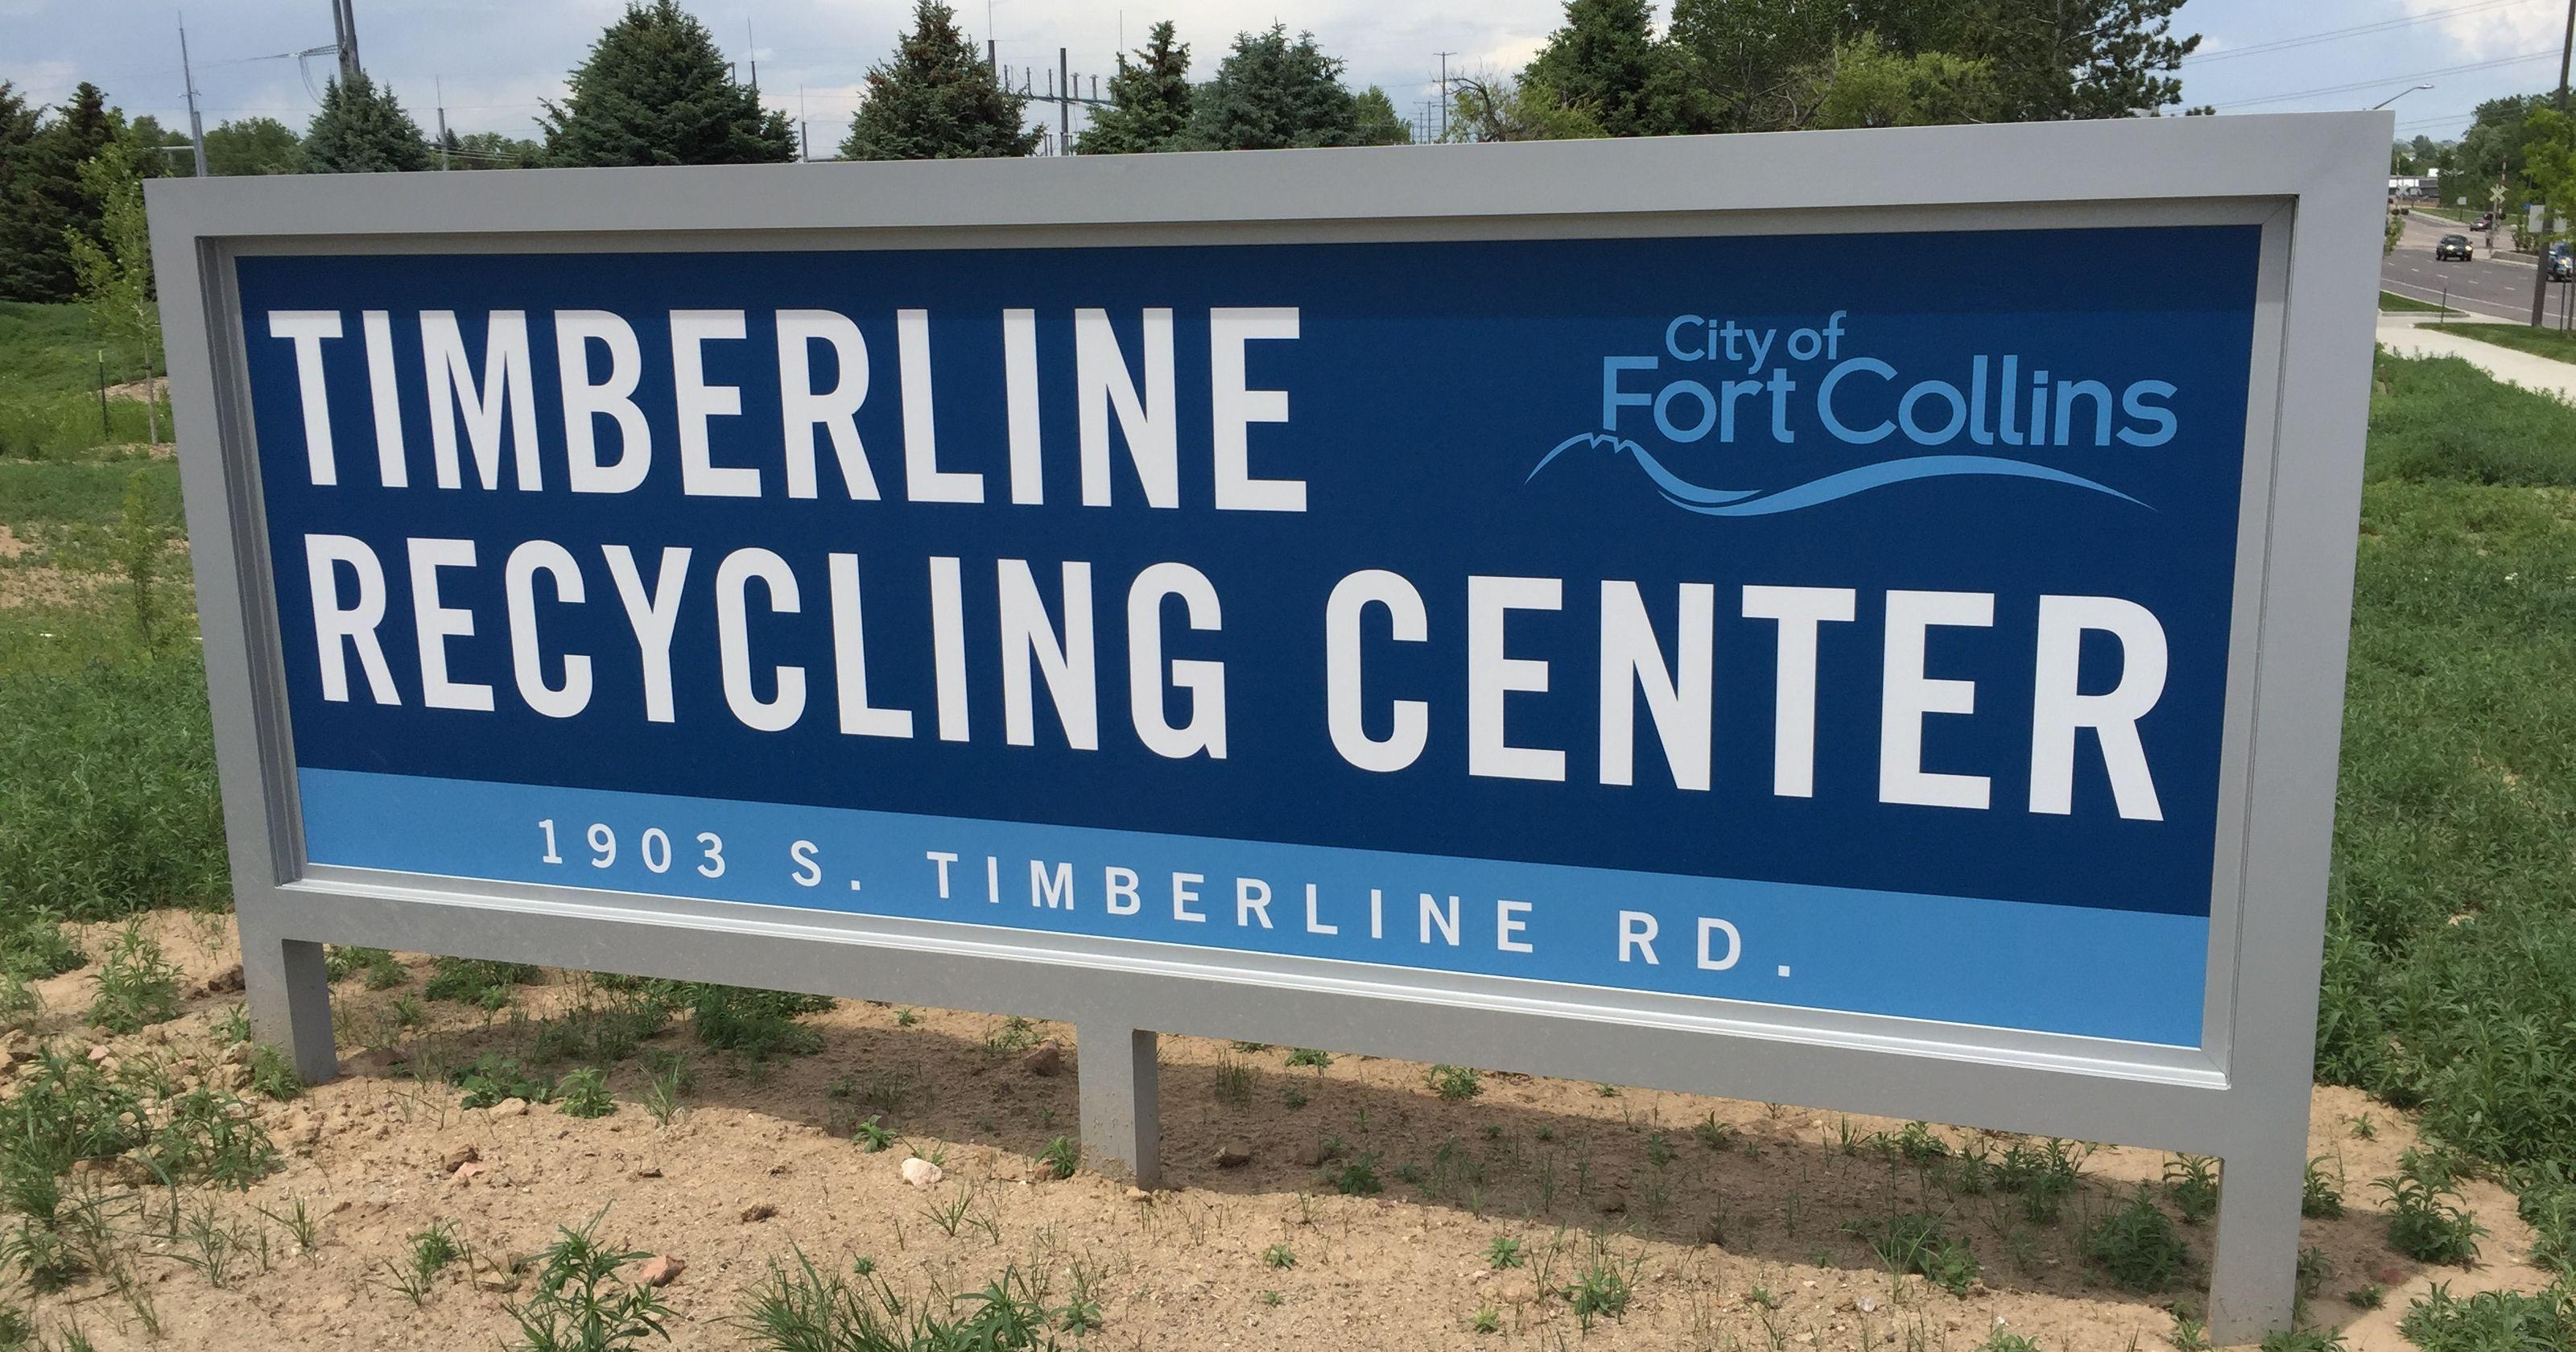 Spotlight image: Share your Feedback about the Timberline Recycling Center Hard-to-Recycle Yard